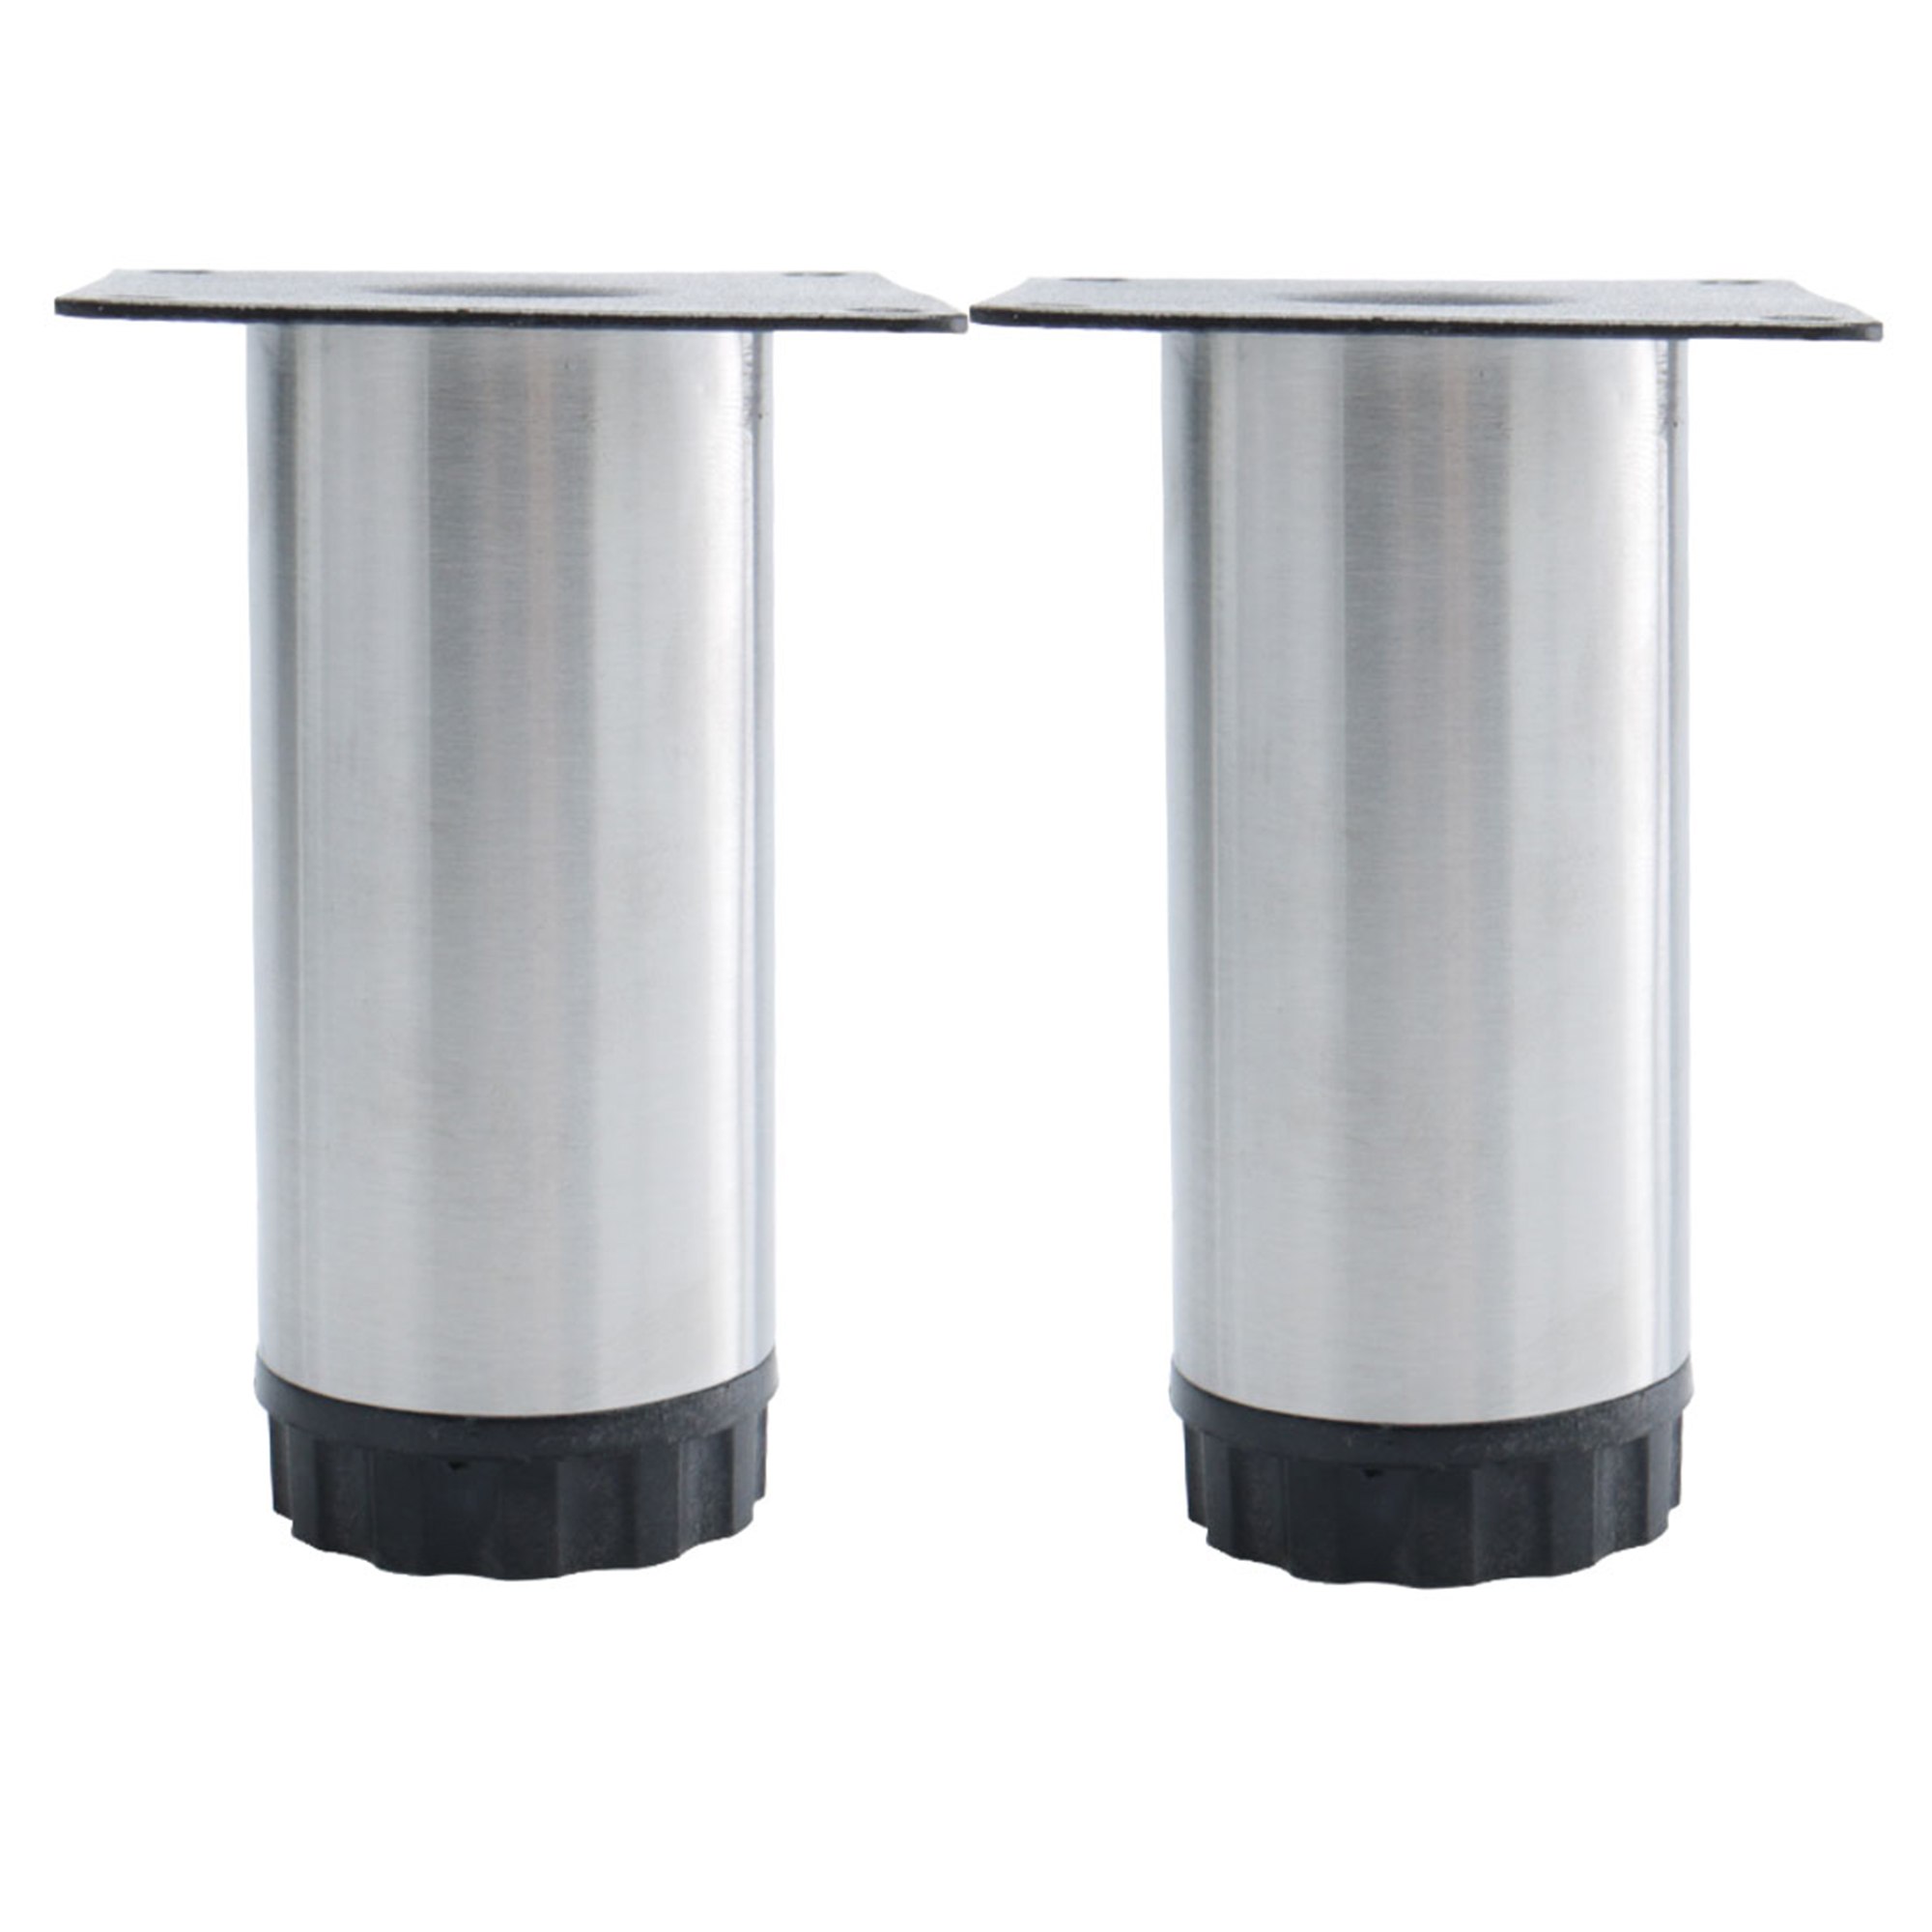 6 Inch Furniture Legs Stainless Steel Feet Sofa Table Cabinet Shelves Leg Replacement Adjule Height 2pcs